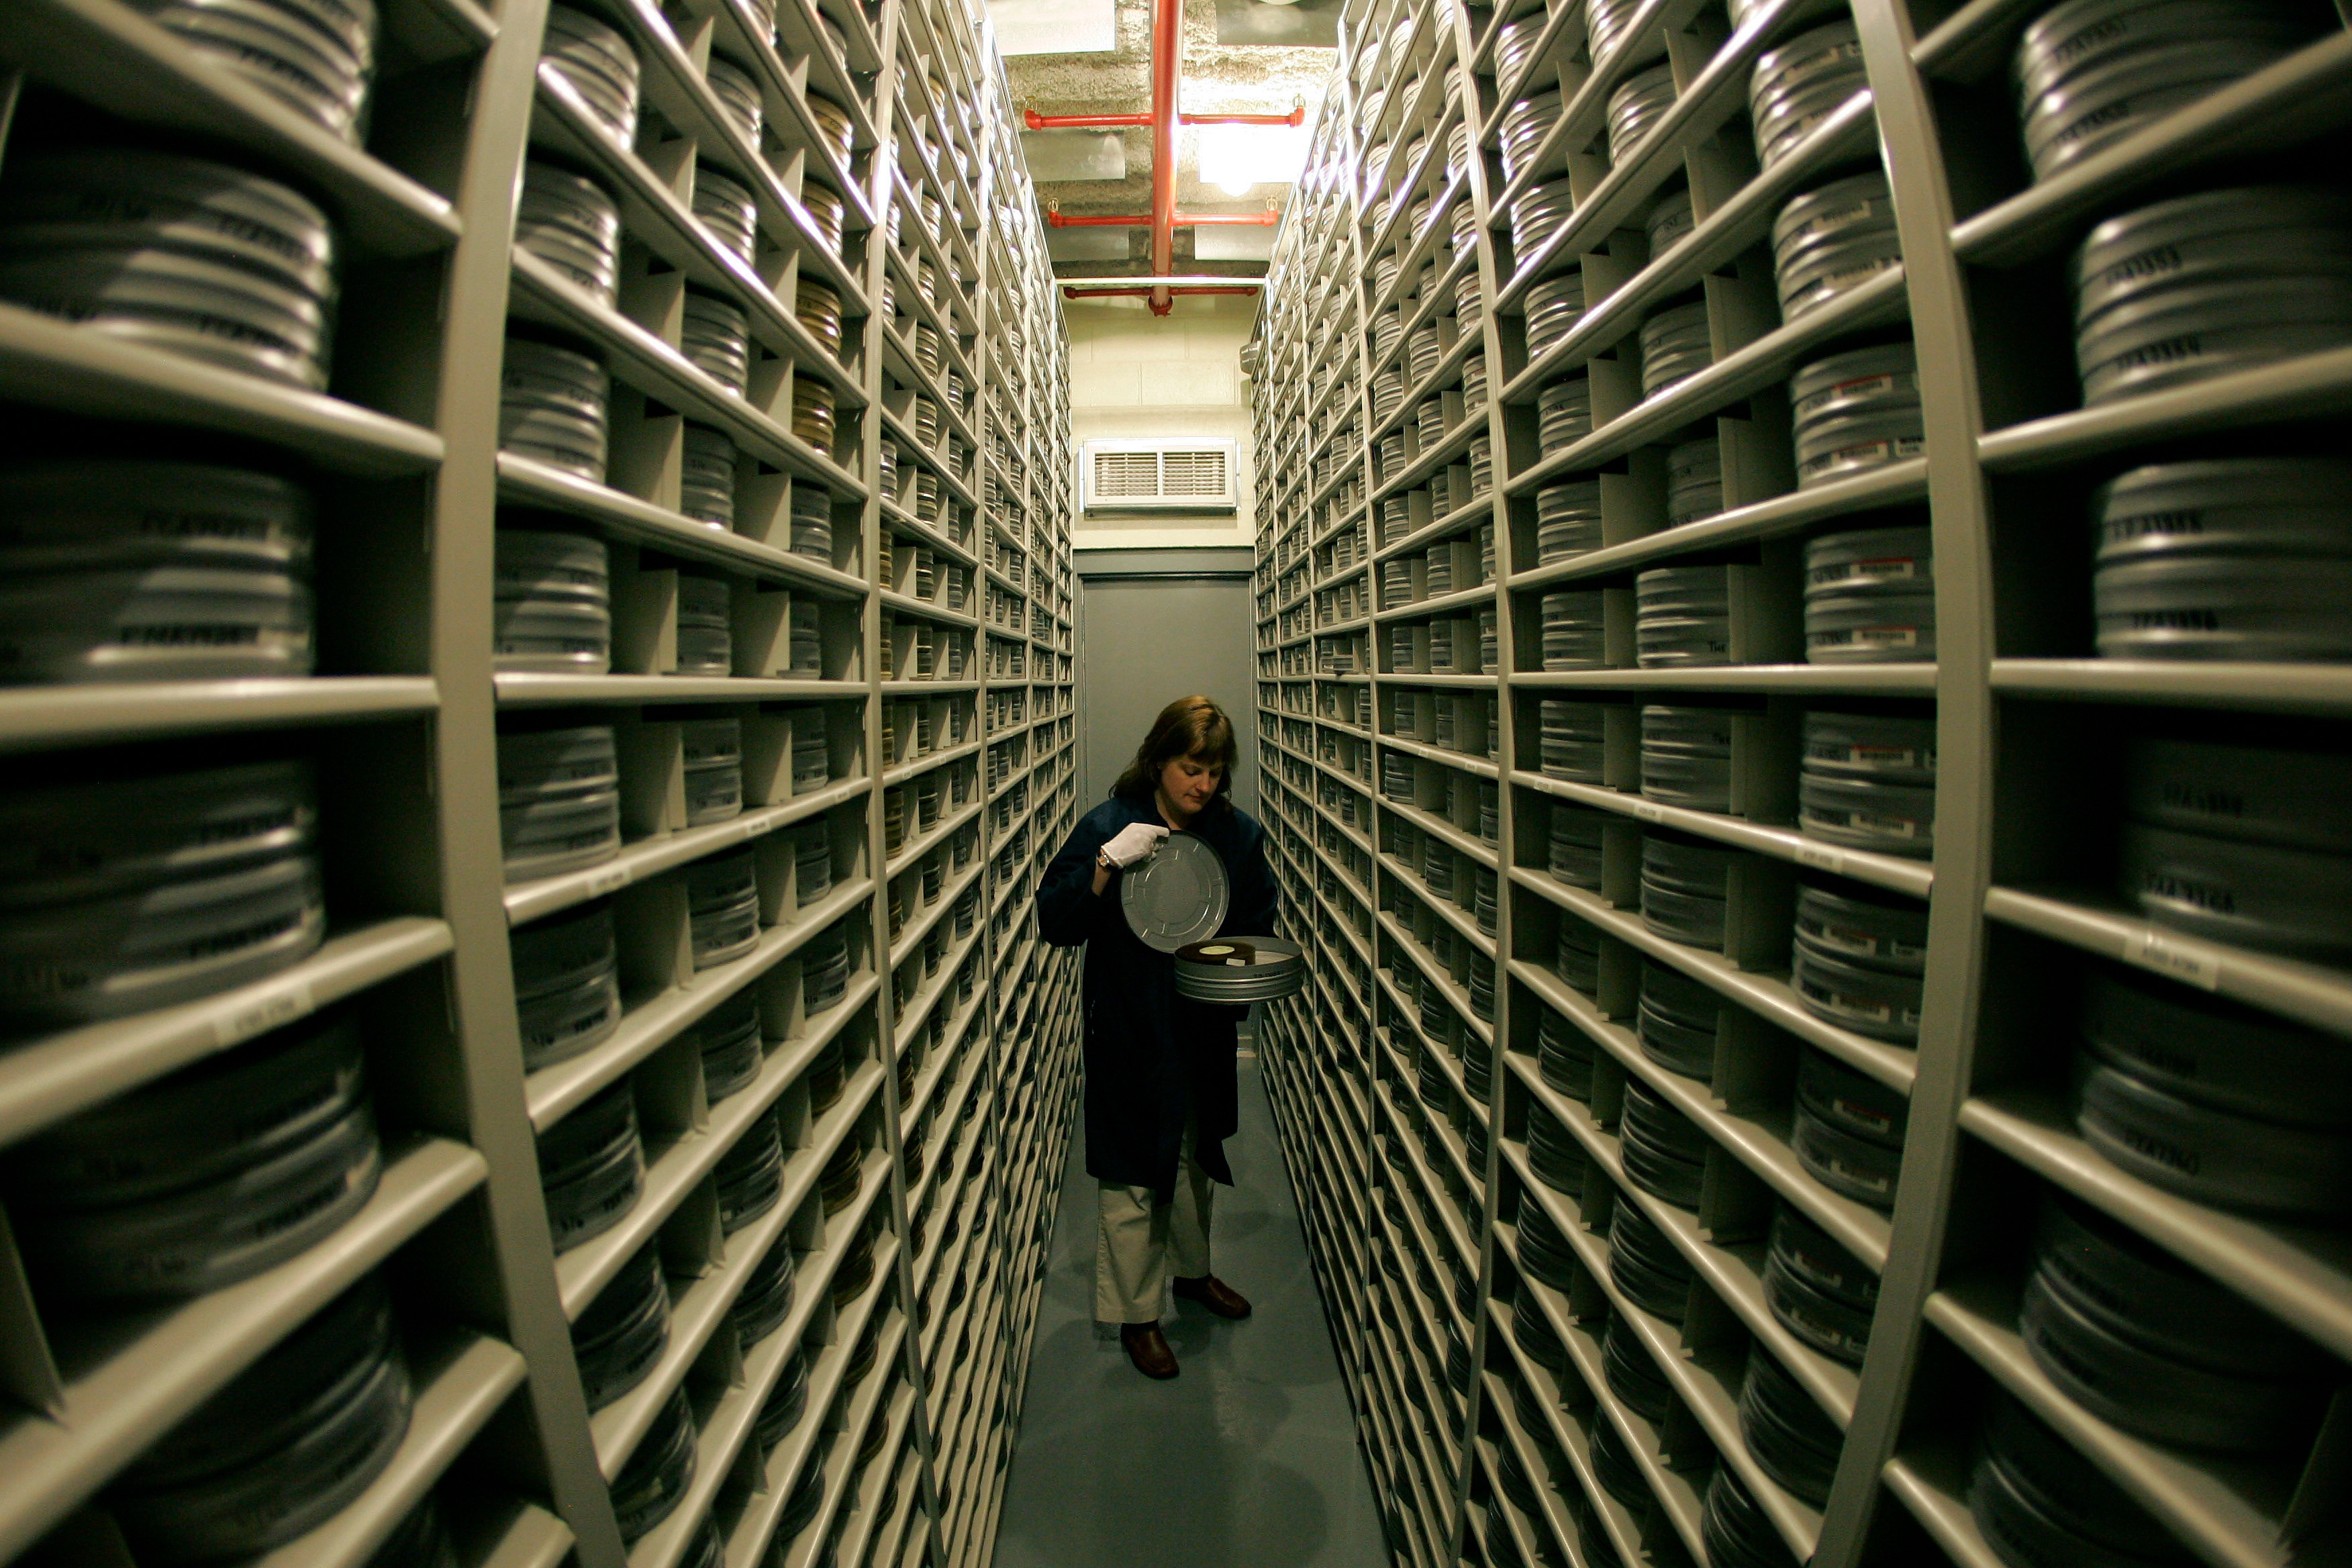 Deborah Stoiber looks for a movie inside the nitrate film vault at the George Eastman House Louis B. Mayer Conservation Center in Chili, N.YPreserving Old Movies, Chili, USA